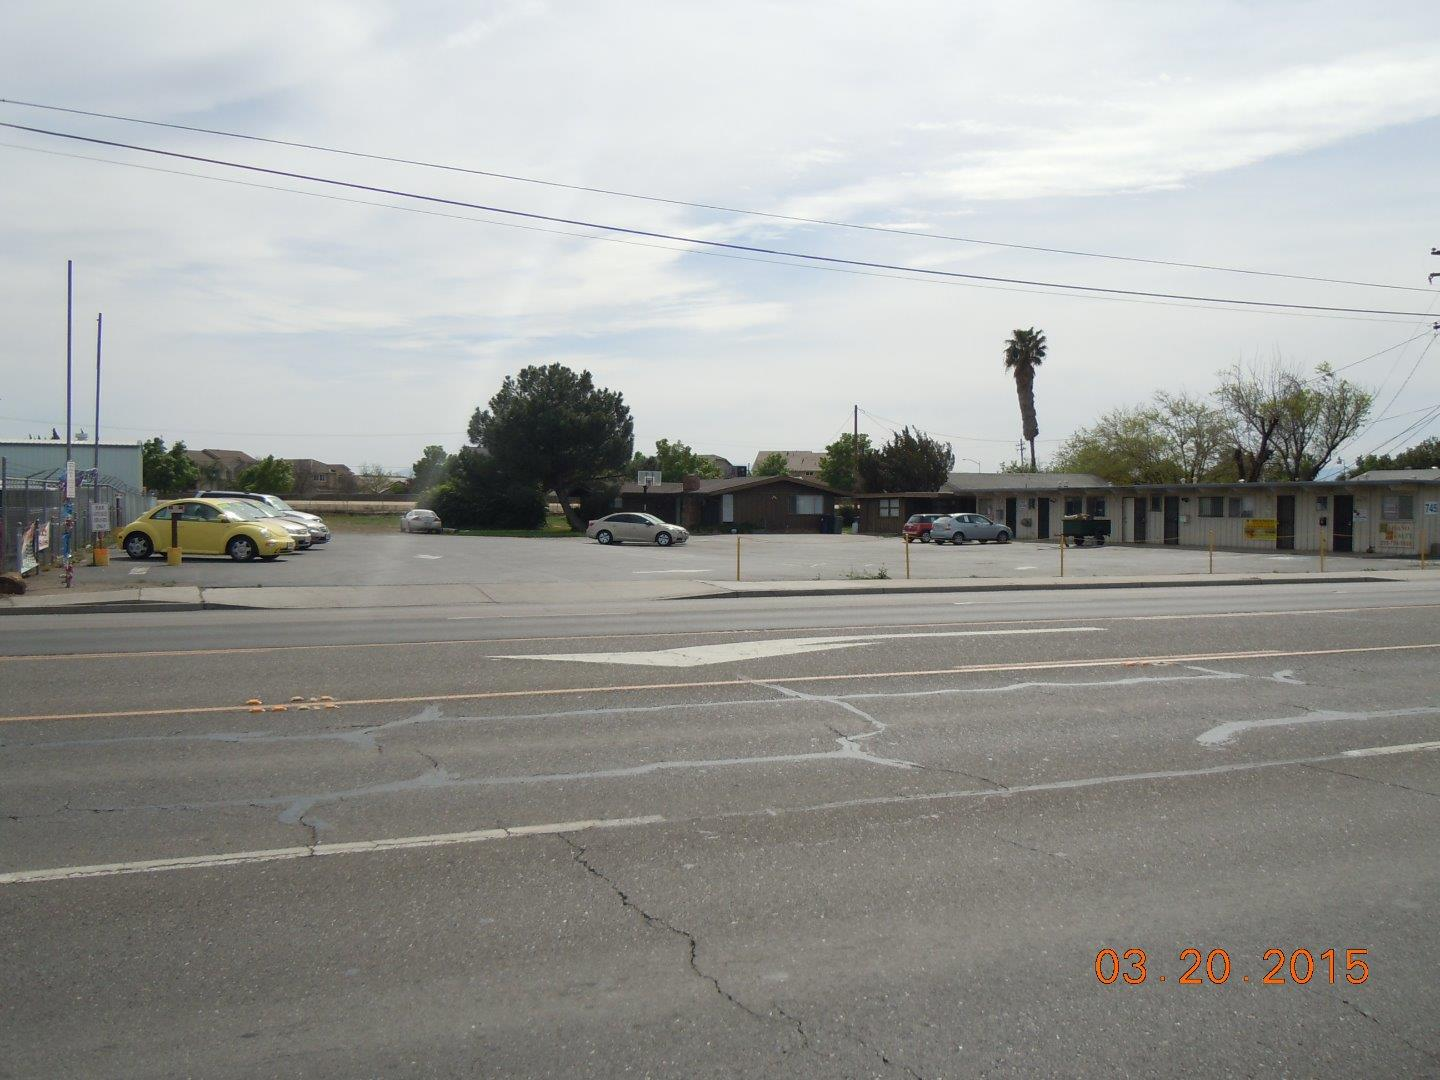 Additional photo for property listing at 739 W Pacheco Boulevard  Los Banos, California 93635 Estados Unidos